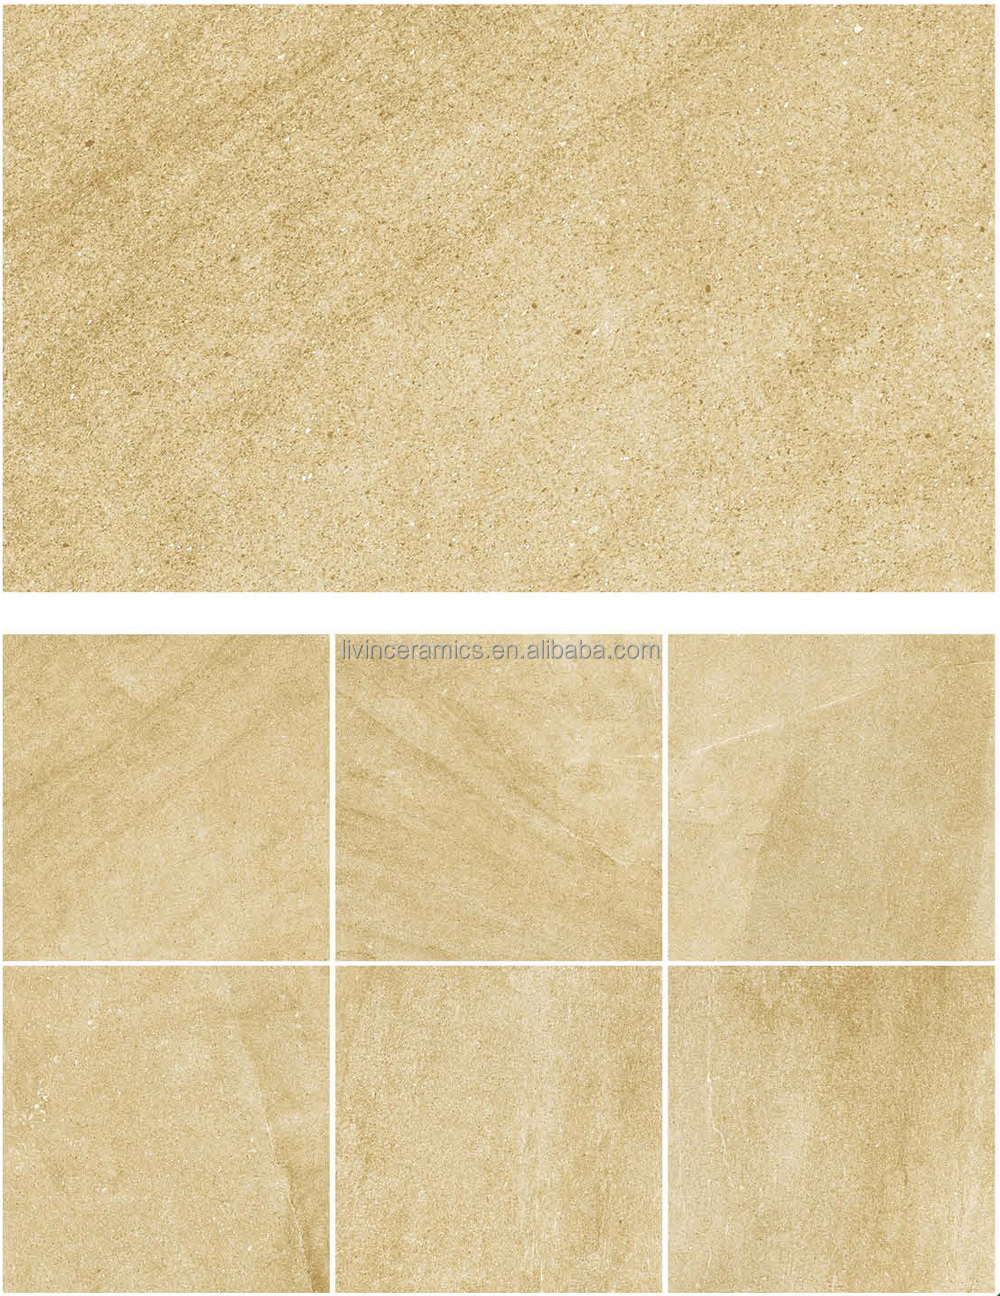 2016 New Design Inkjet Ceramic Tile Matte Finish Porcelain Floor Tile Rustic Porcelain Tiles